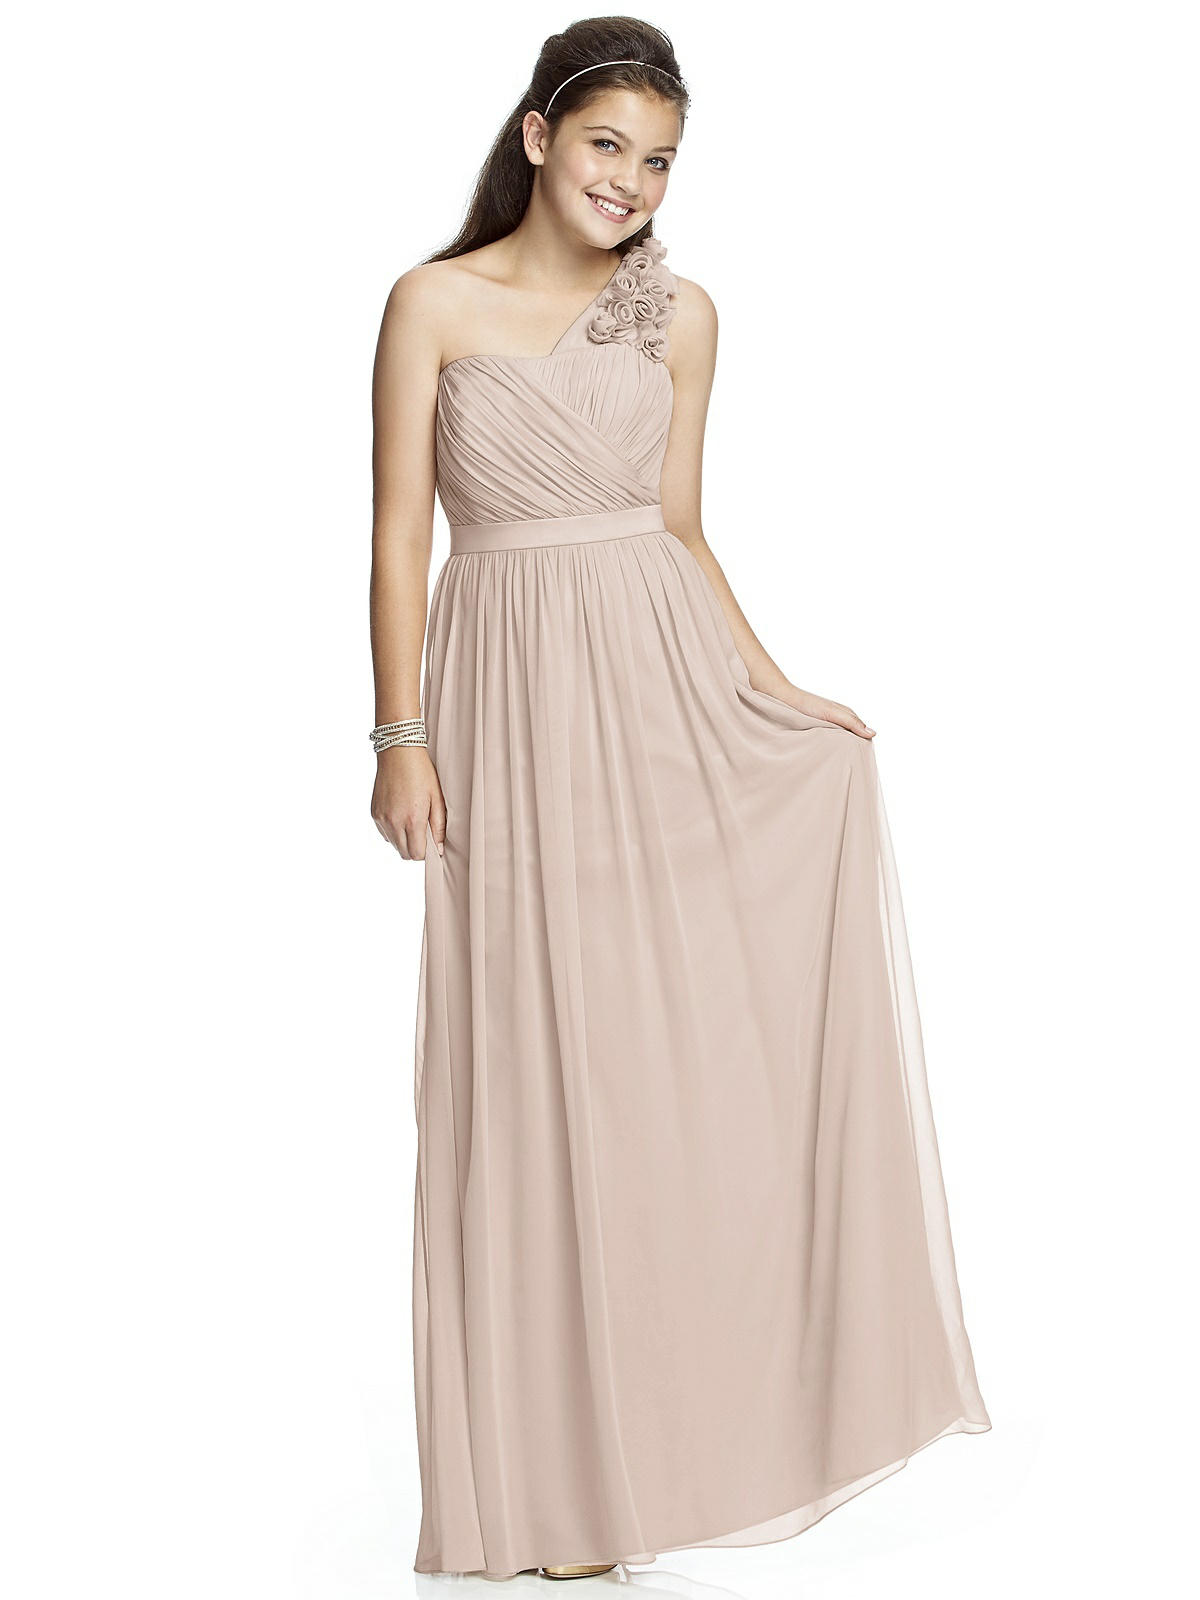 Junior Bridesmaid Dress JR526: The Dessy Group